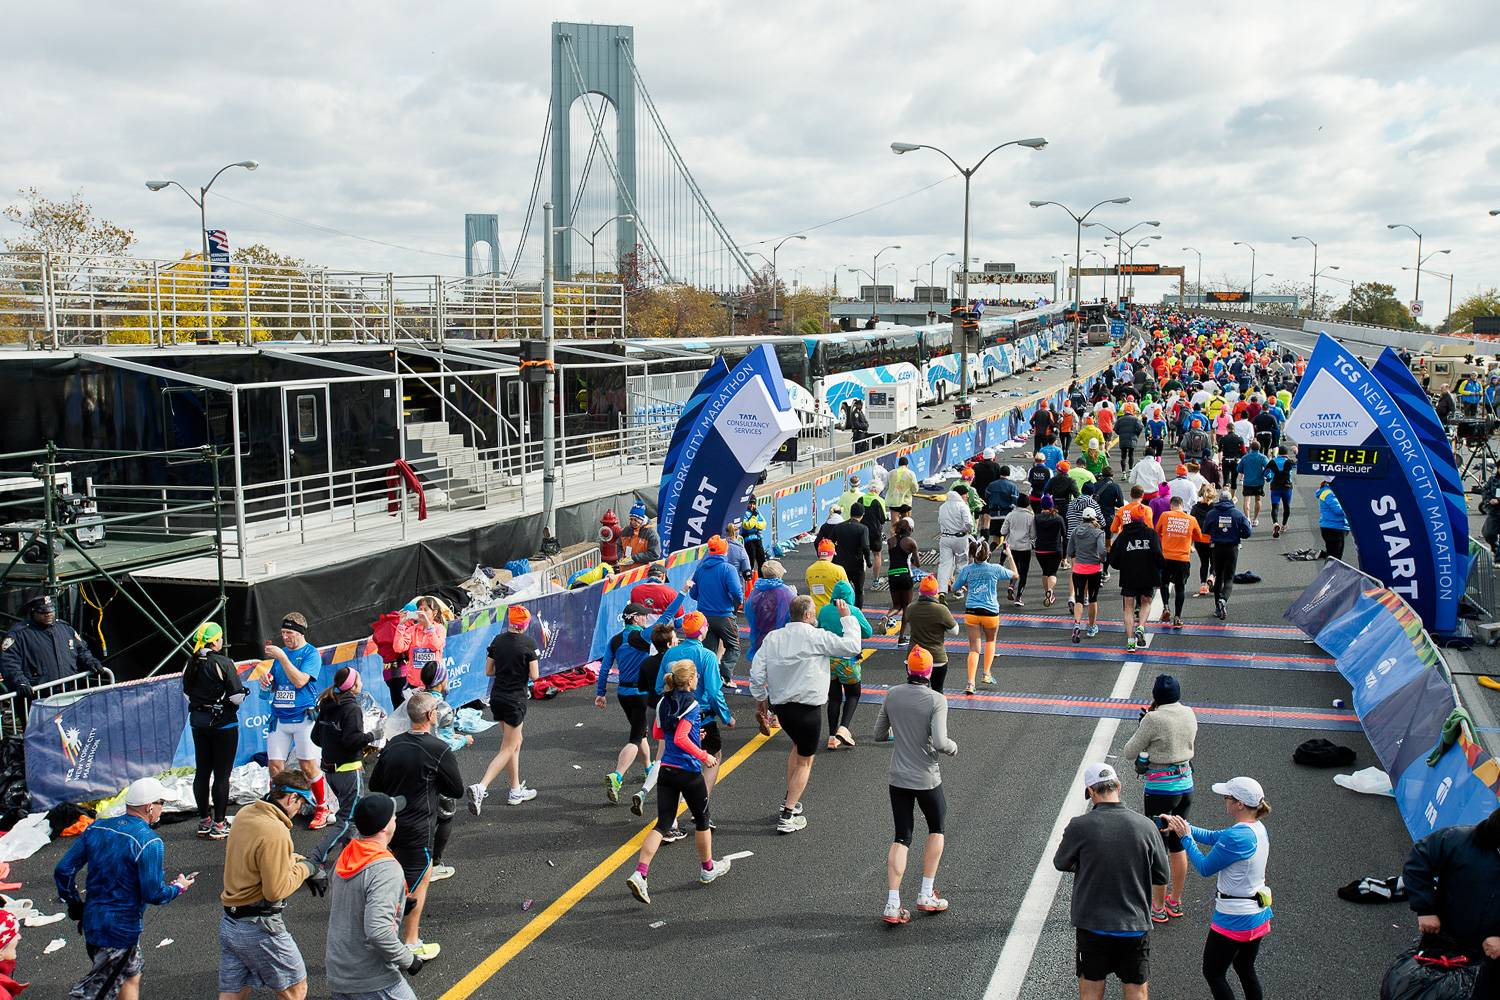 Image of the starting line of the New York City Marathon with the Verrazzano-Narrows Bridge in the background.